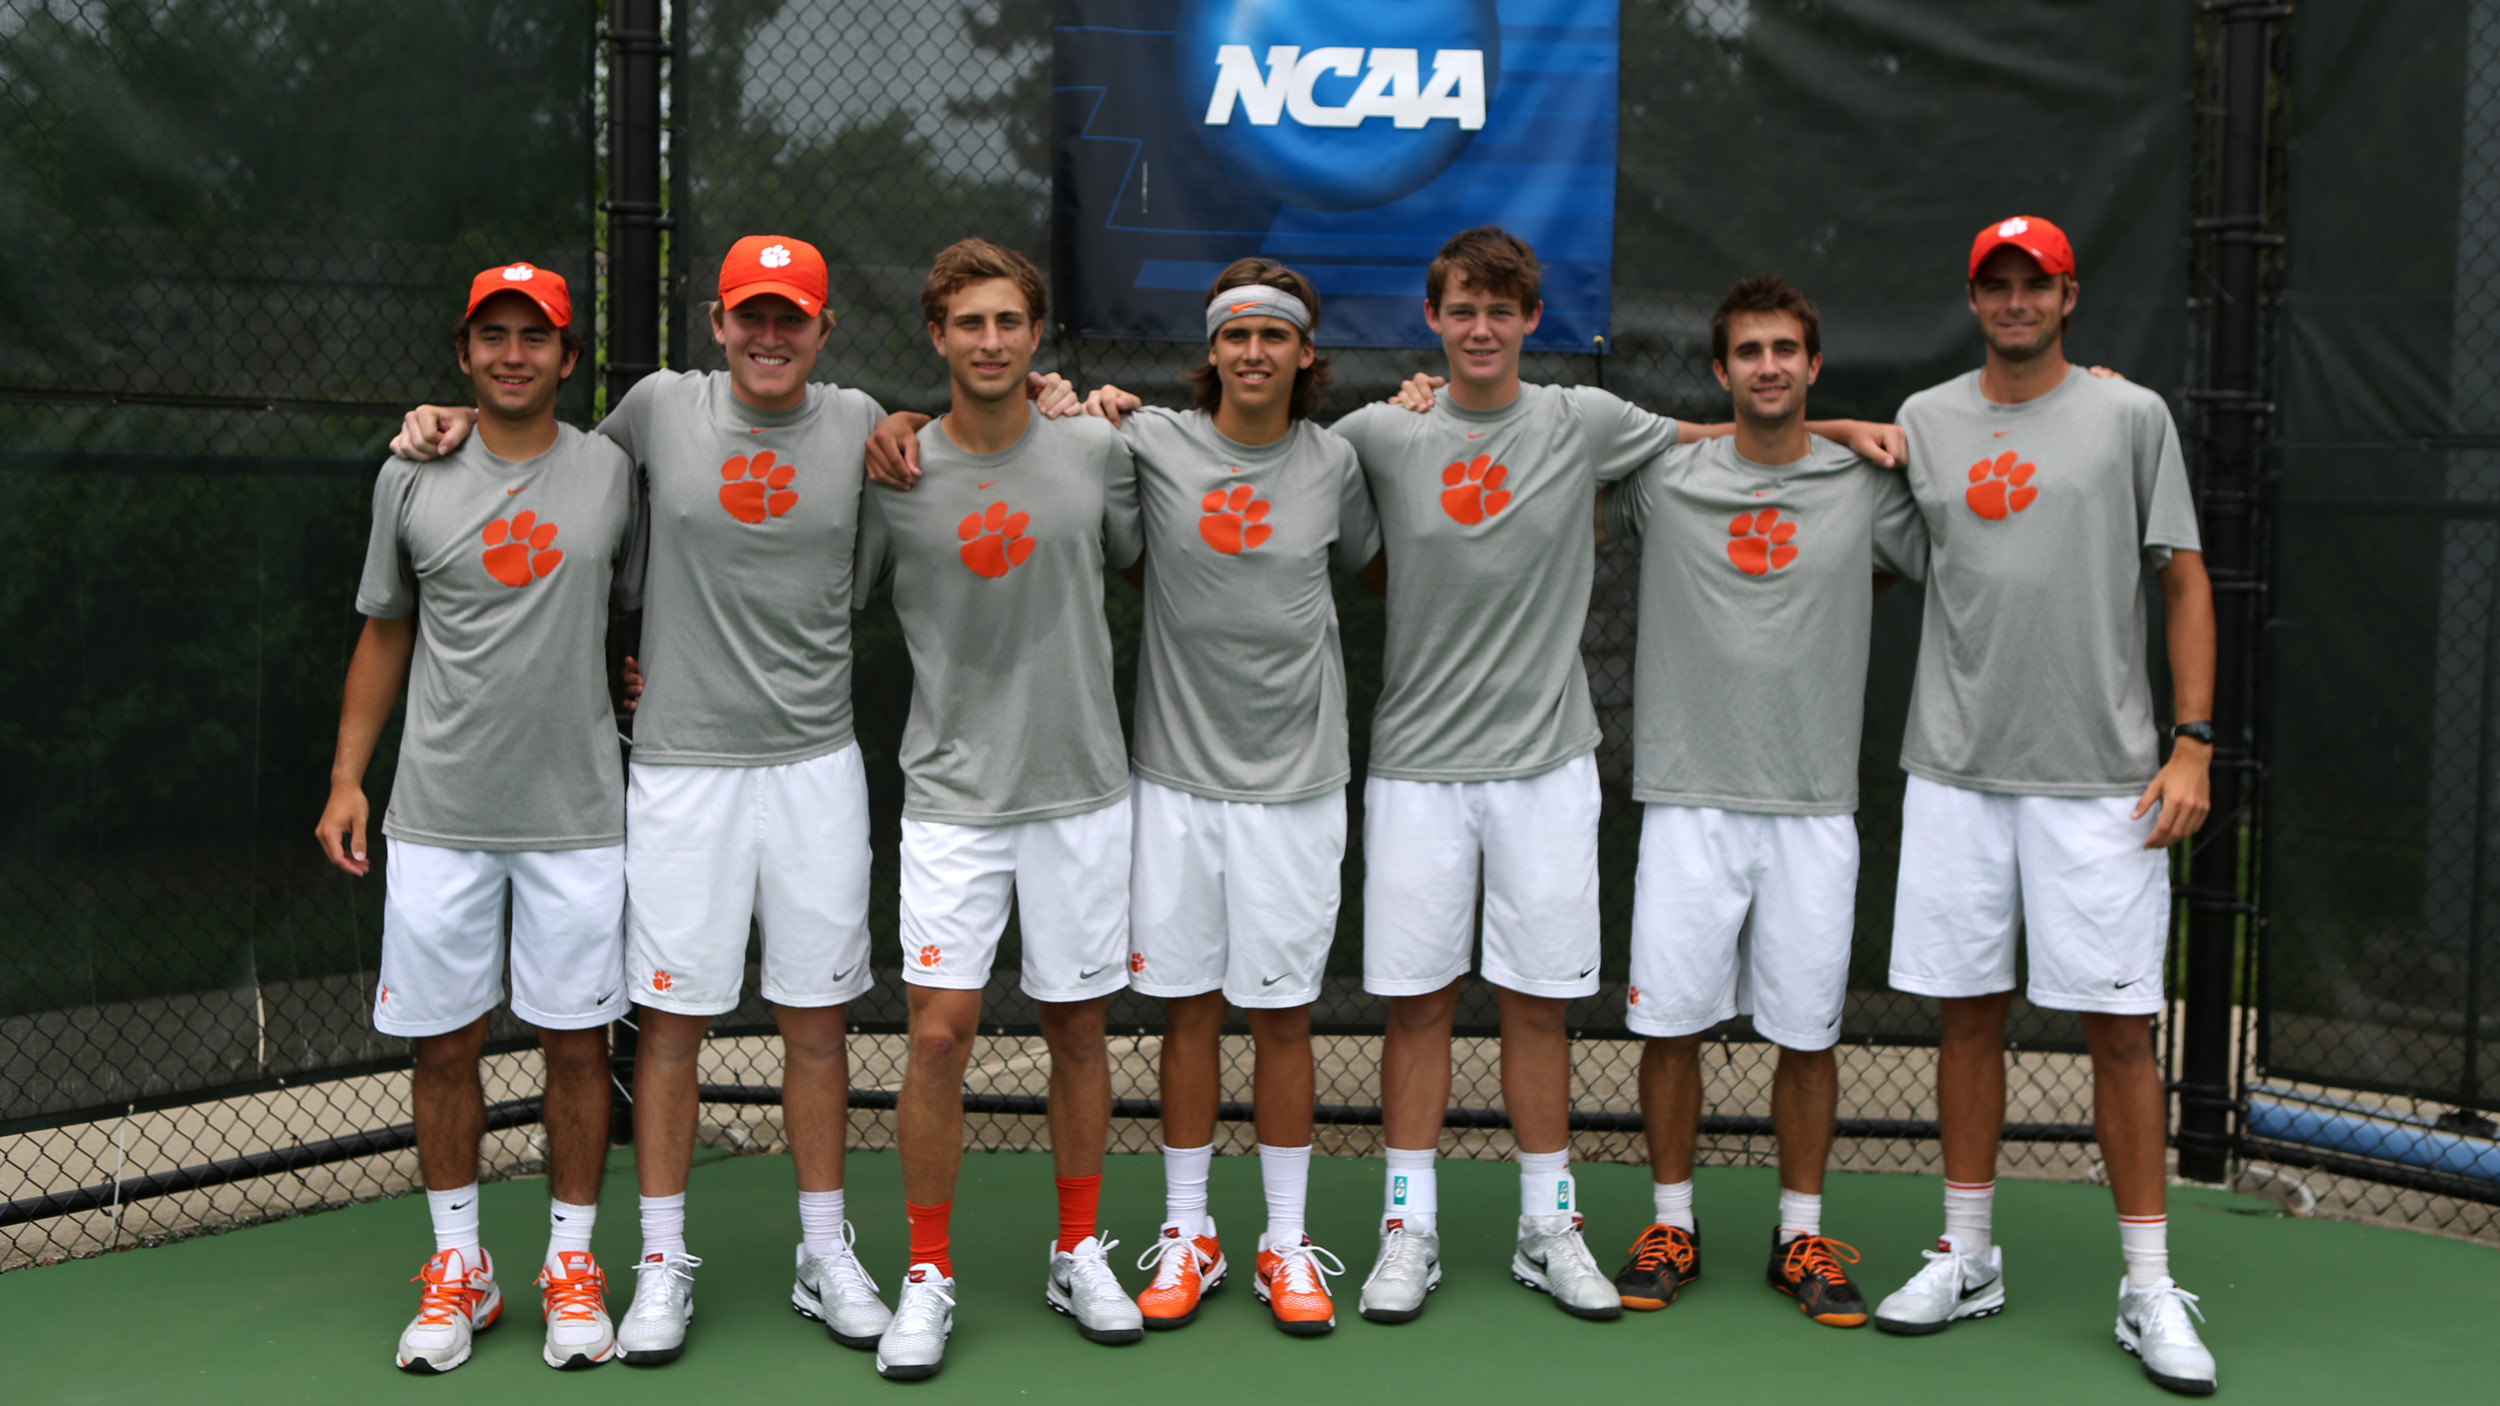 Tigers Advance to NCAA Championships Second Round with 4-1 Win Over Purdue